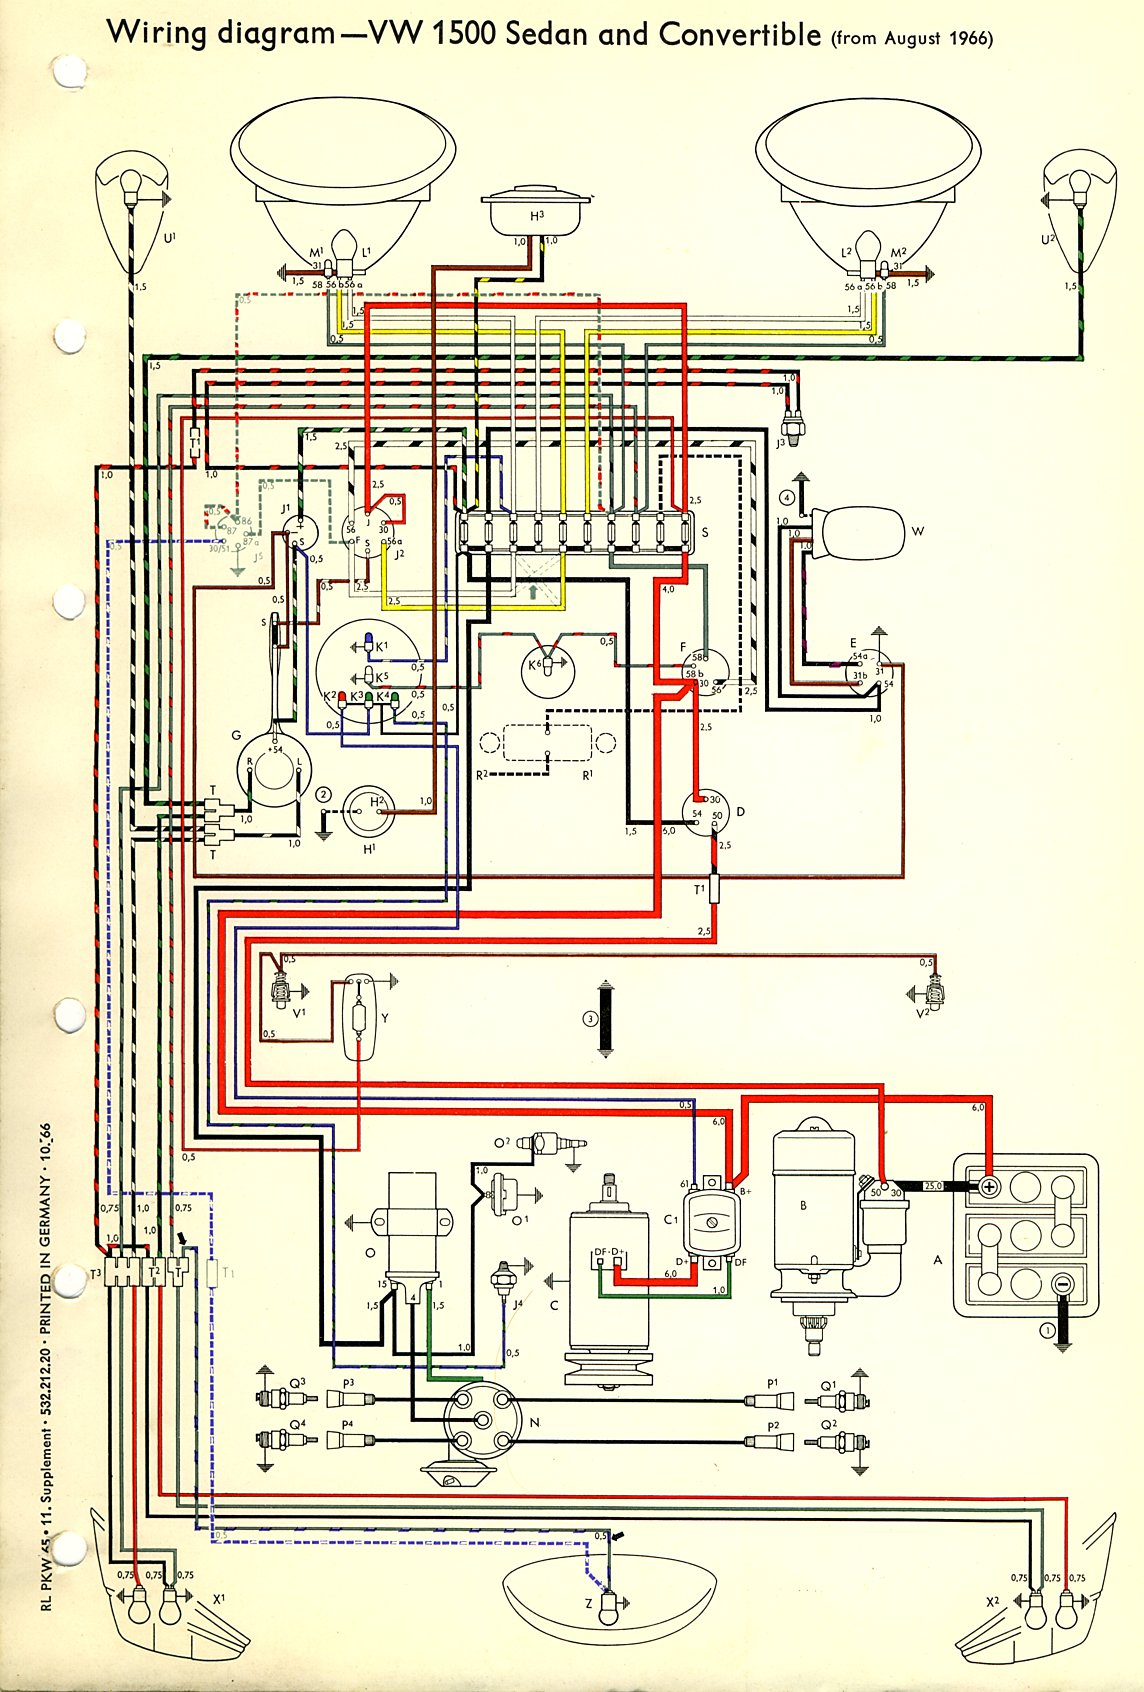 Vw Beetle Wiring Diagram Light Opinions About 2001 Jetta Headlight Thesamba Com Type 1 Diagrams Volkswagen 1973 Tail